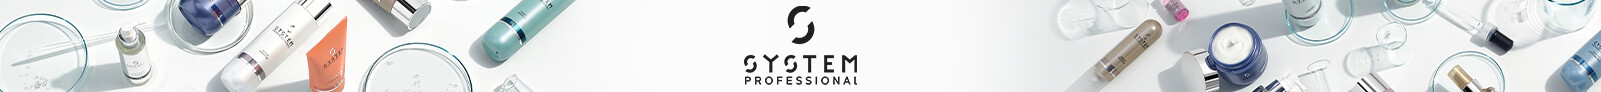 WS_System-Professional_Subcategory-Banner_Brand.jpg